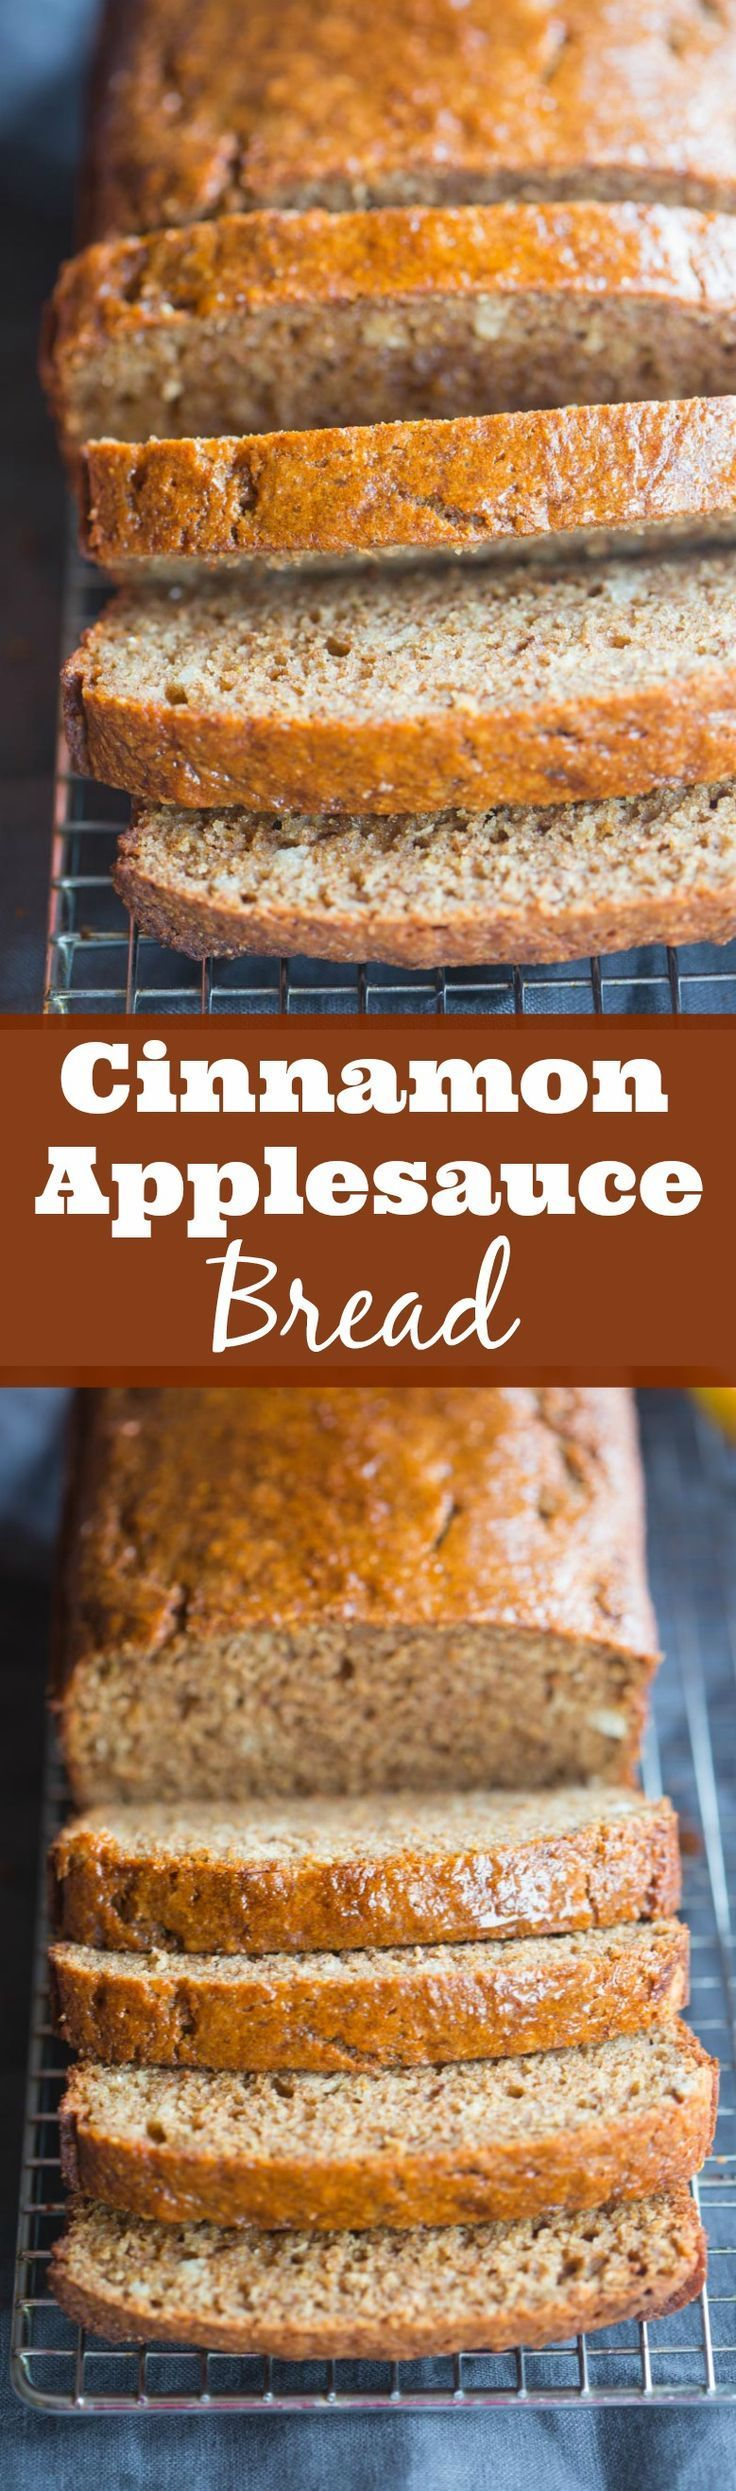 The BEST Cinnamon Applesauce Bread! Bakery style and made with whole grains| Tastes Better From Scratch (Fall Bake Bread)